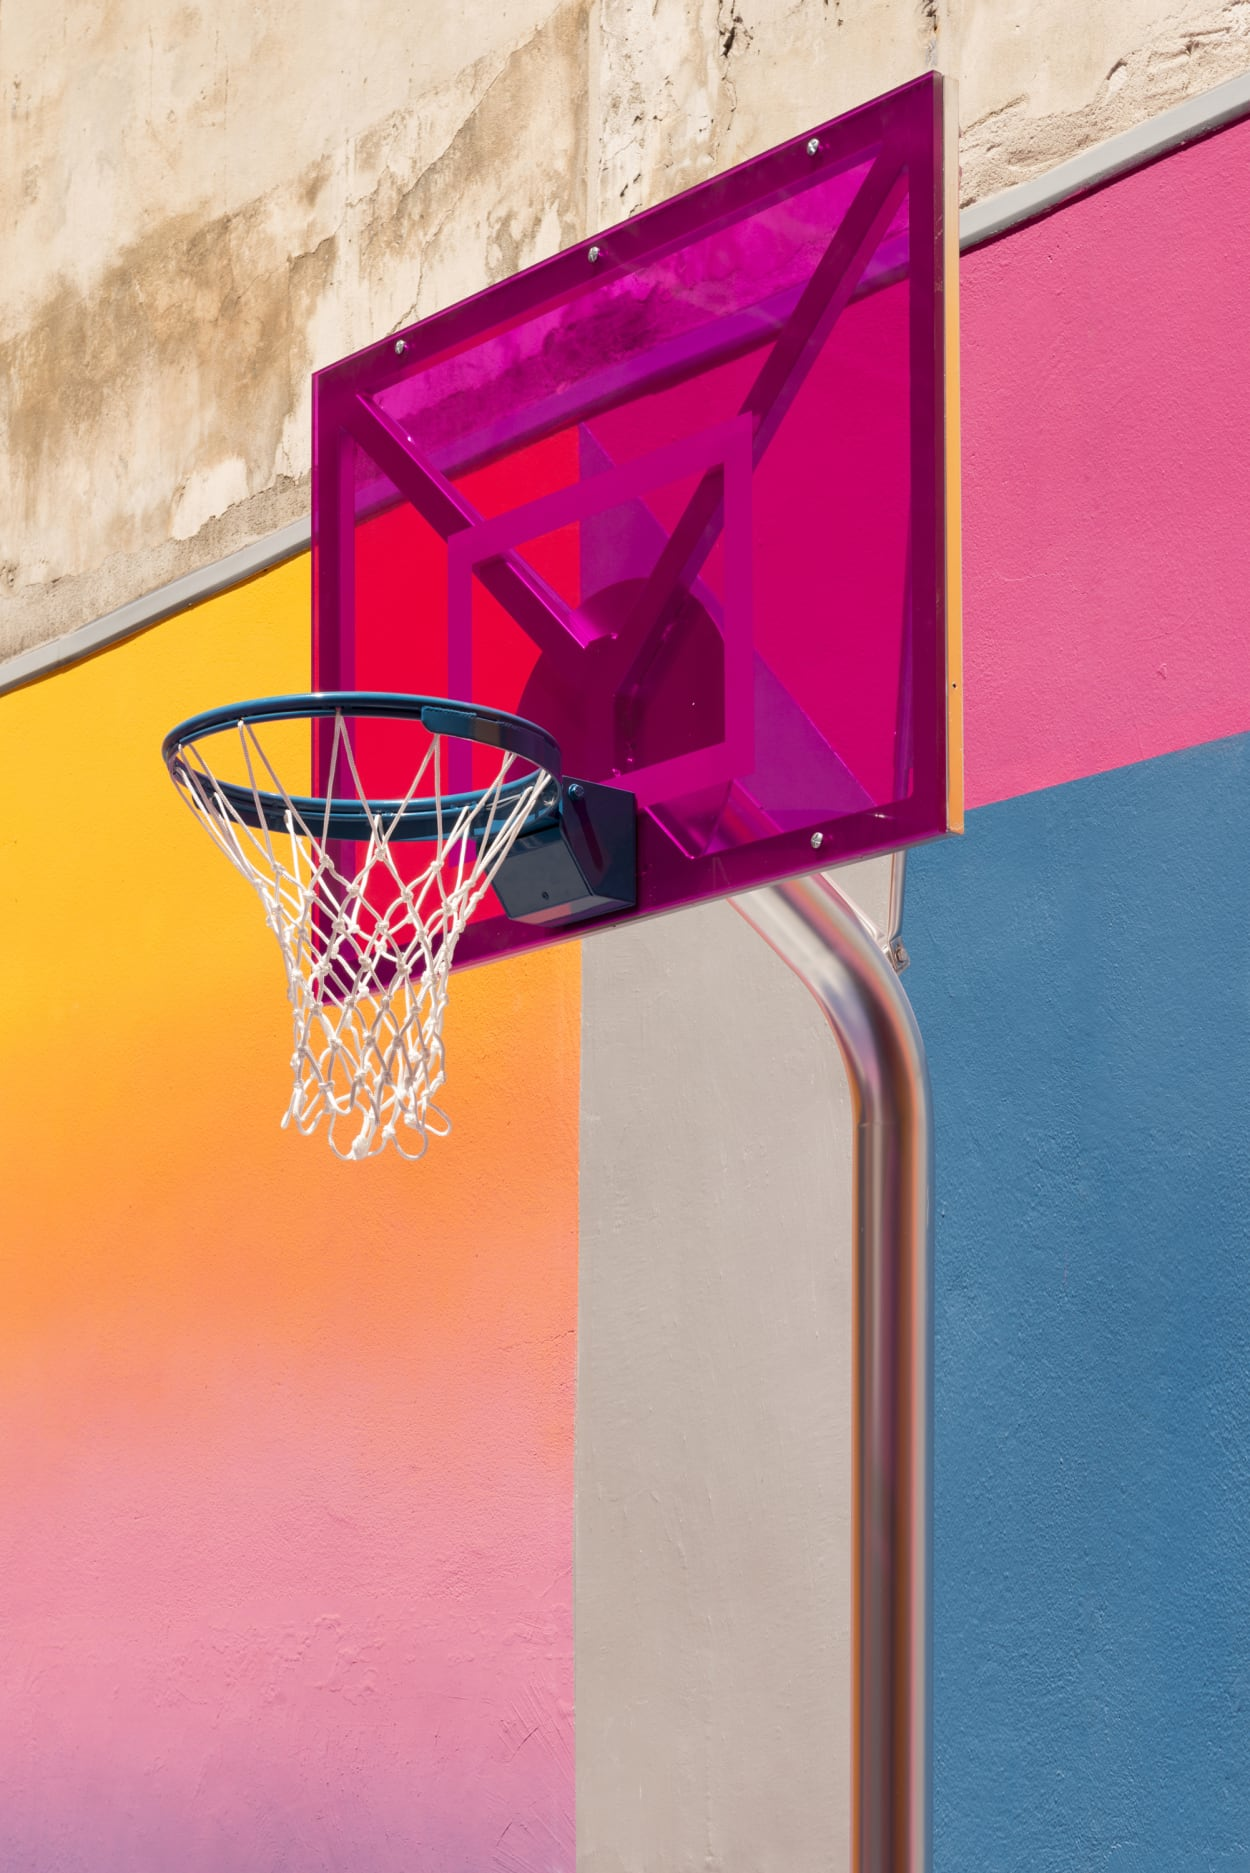 Pigalle, Basketball Court, paris, NikeLab